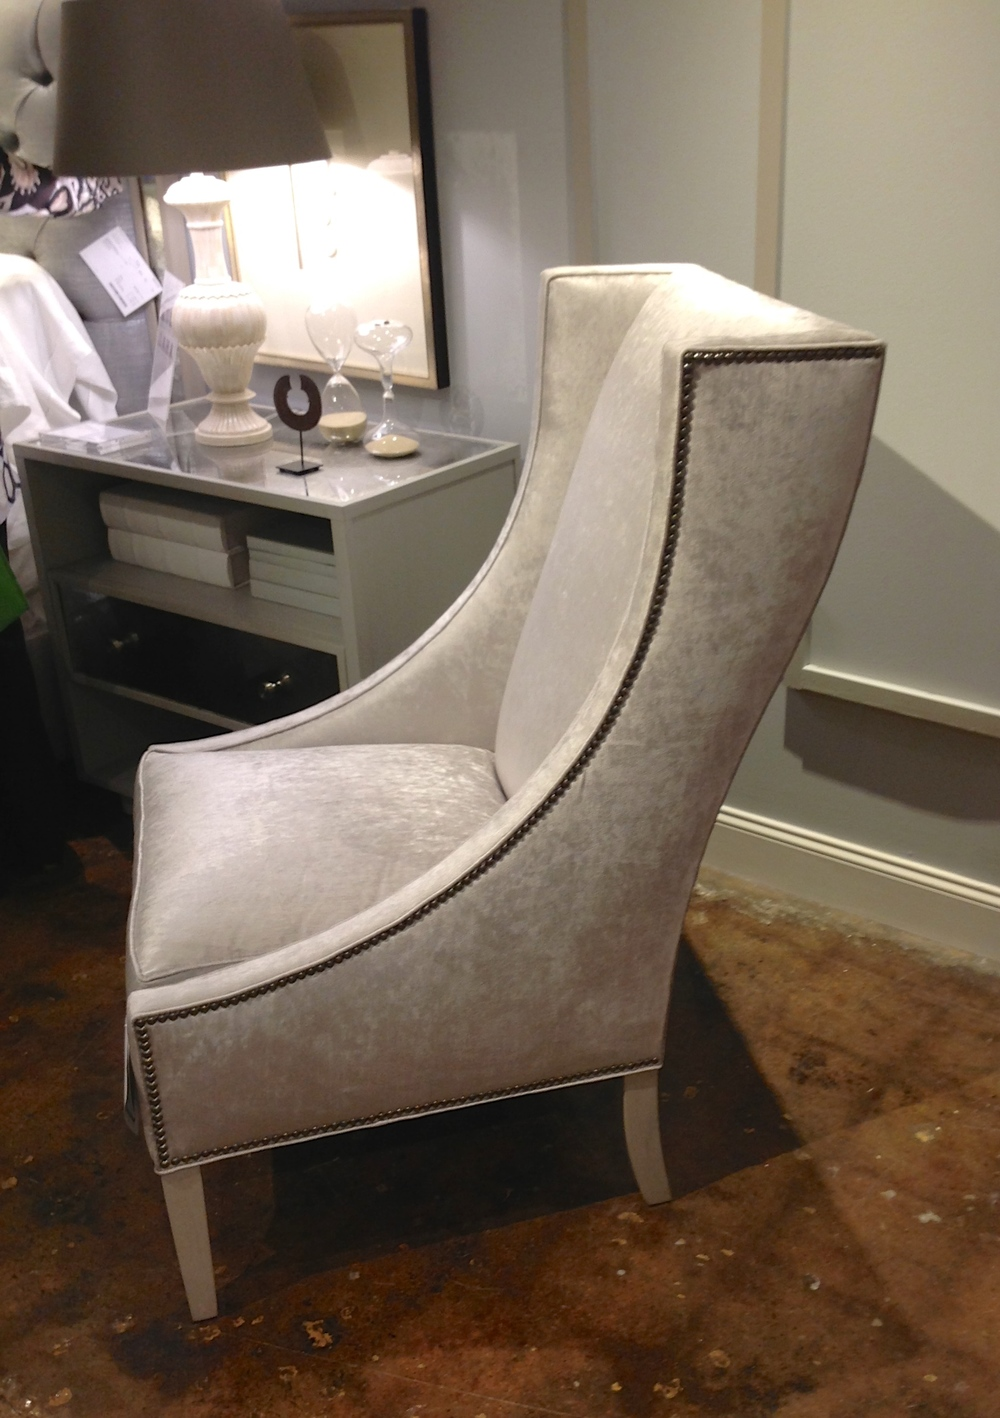 In love with this sleek, beautiful accent chair! It would be perfect in a master bedroom or living area!